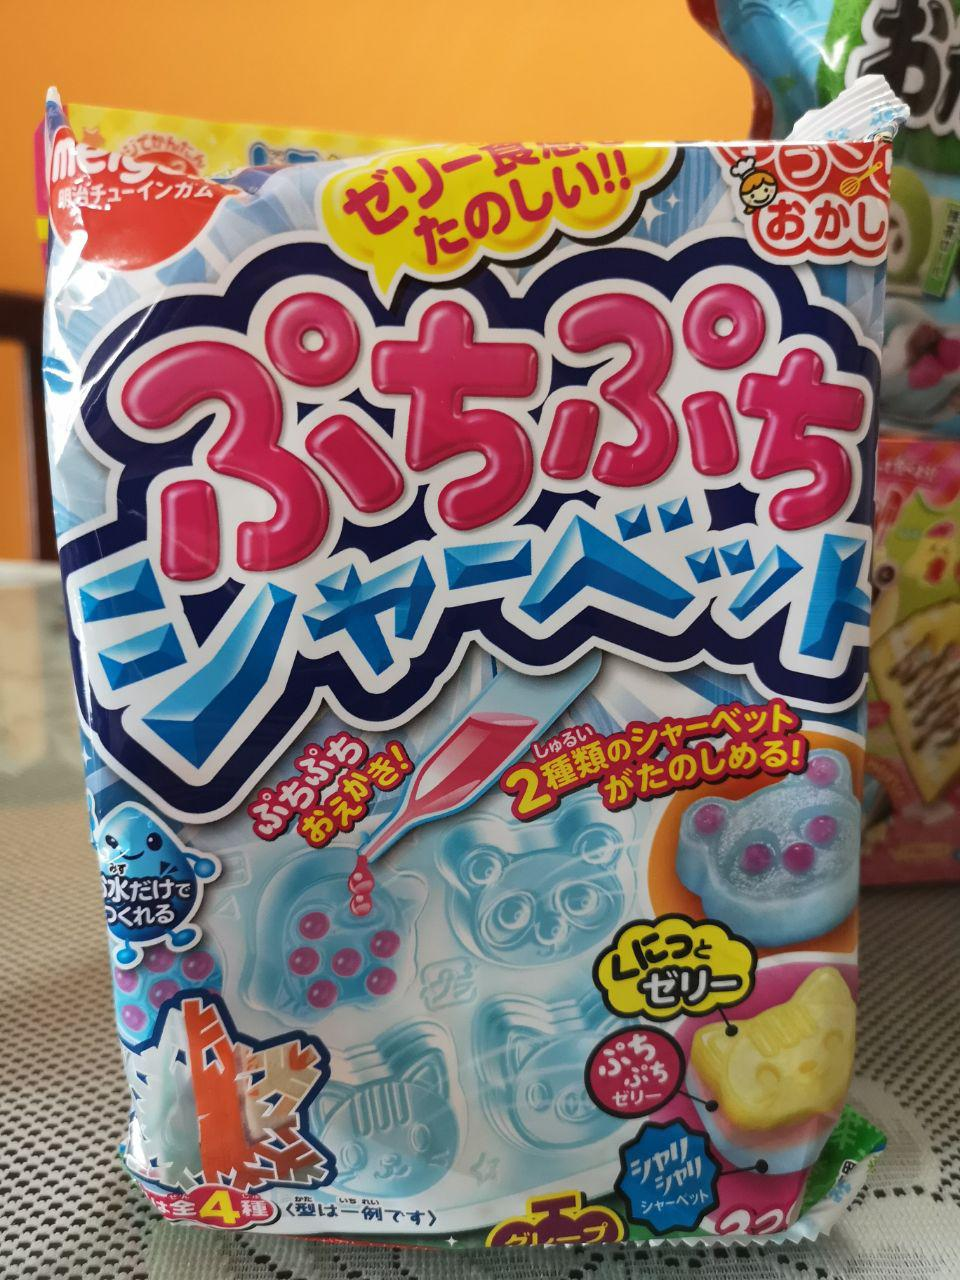 Rice-Media-Miniature-Japanese-Candy-Review-6